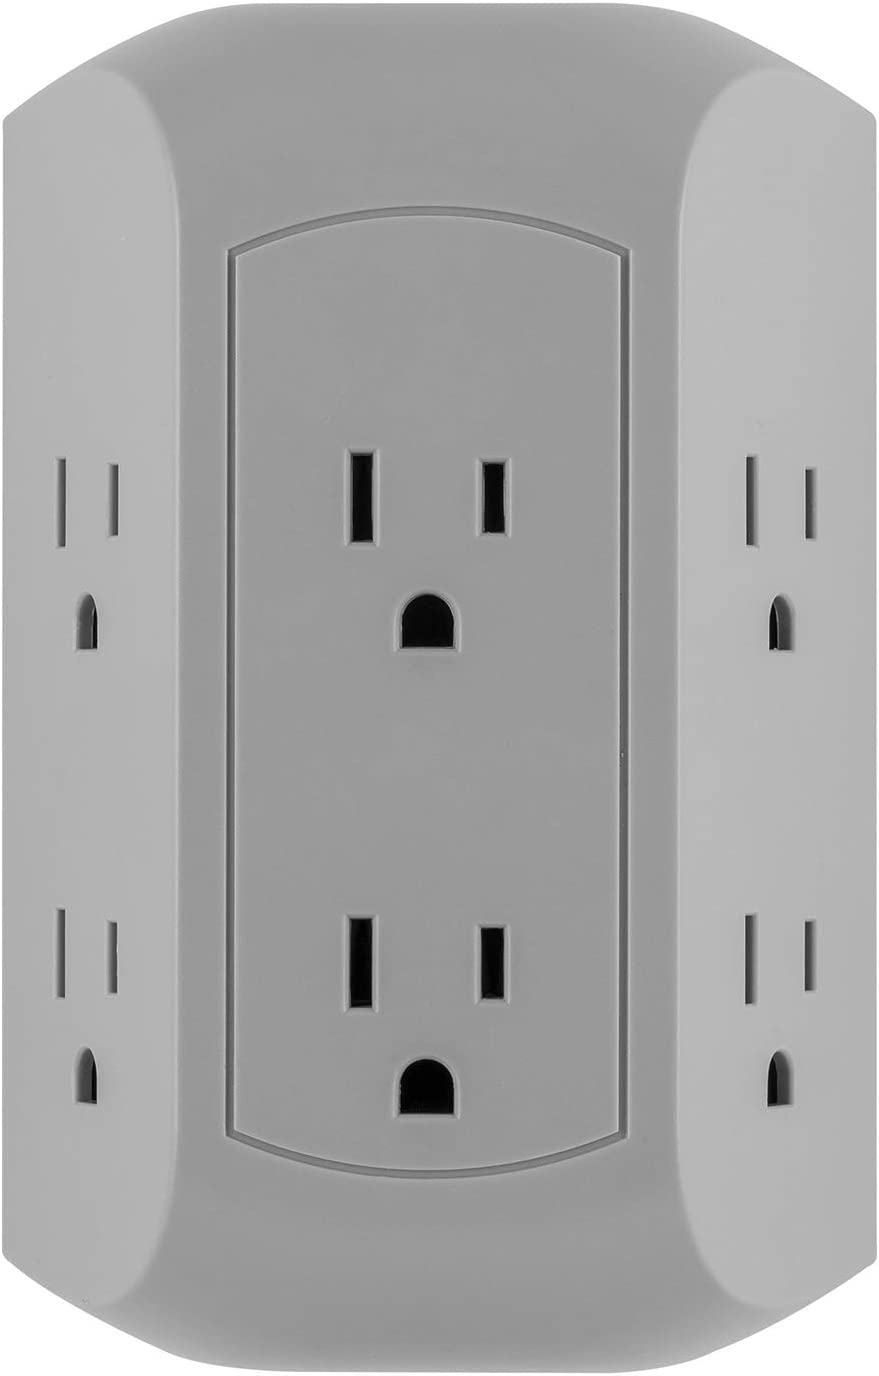 GE UltraPro 6-Outlet Surge Protector Adapter Spaced, 3-Prong Power Strip Wall Tap, Charging Station, Side Access, Gray, 47823